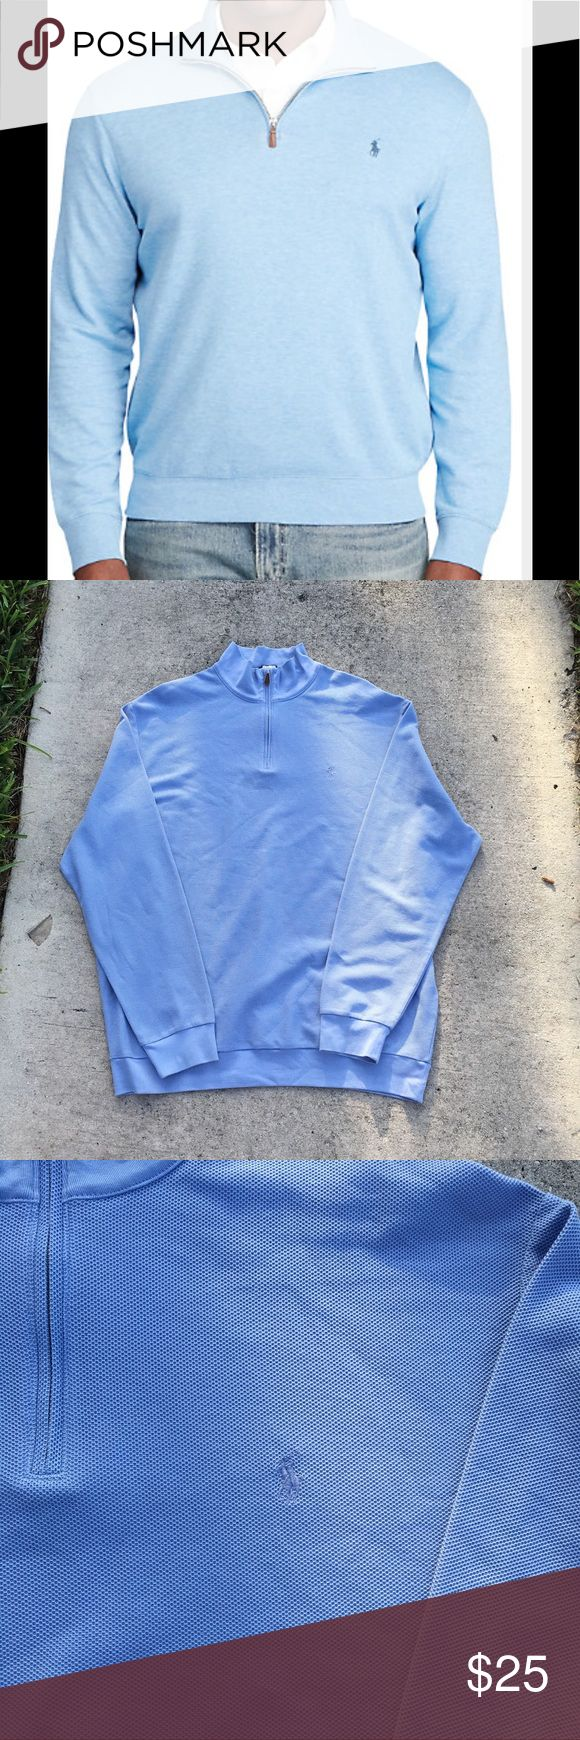 Ralph Lauren Polo Blue Pullover Sweater Baby blue long sleeve Ralph Lauren Golf Polo. Half zipper front, with collar. Polo emblem on upper right chest. Size XL. No rips, stains, or tears. Note: the model picture is same style, color is just a shade lighter than the one I have for sale. Ralph Lauren Jackets & Coats Lightweight & Shirt Jackets